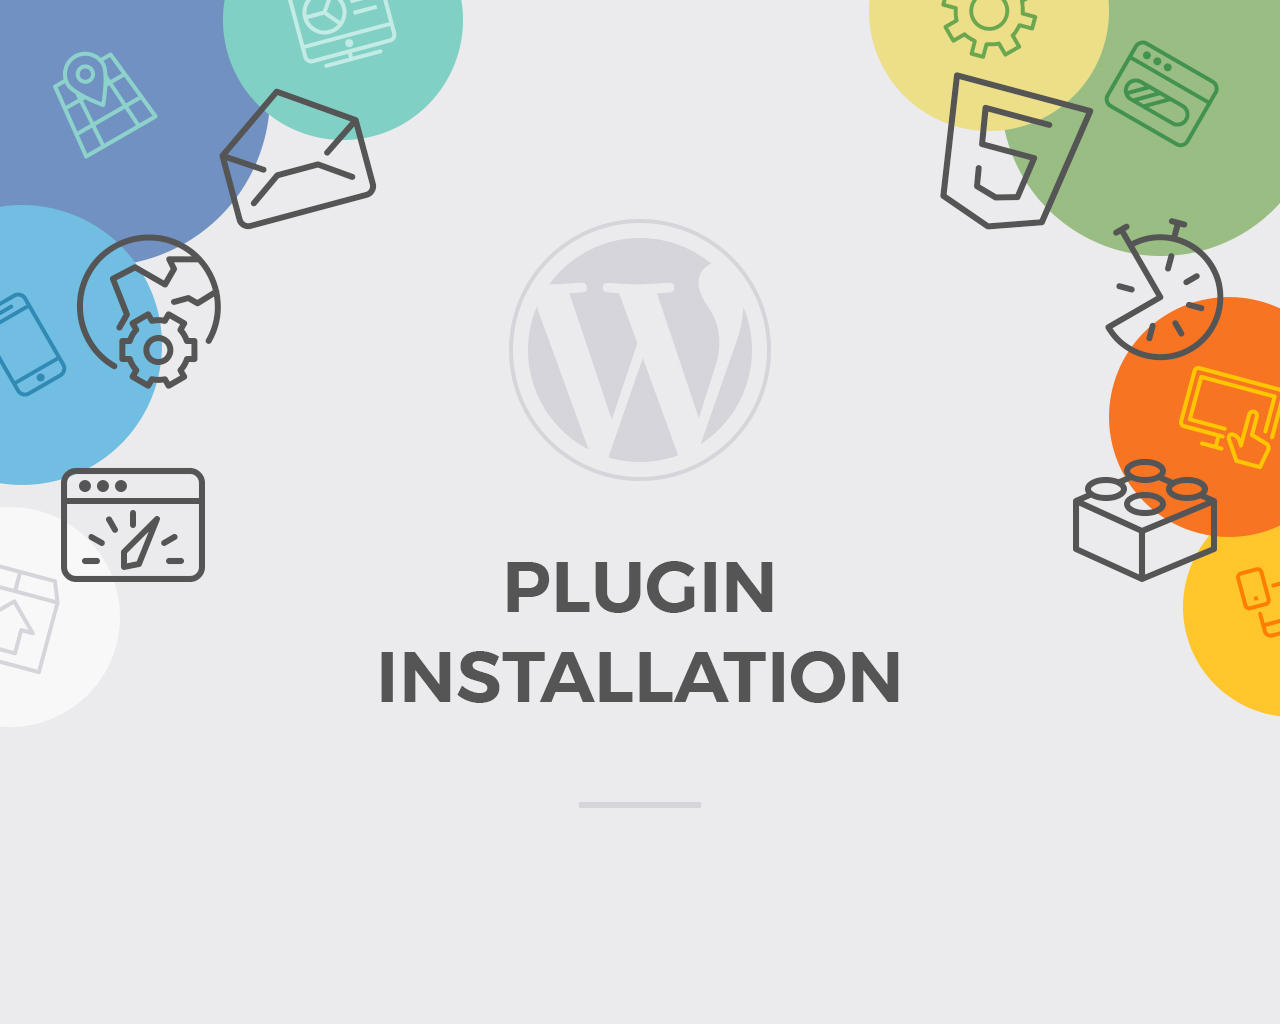 WordPress Plugin Installation by QuanticaLabs - 107755